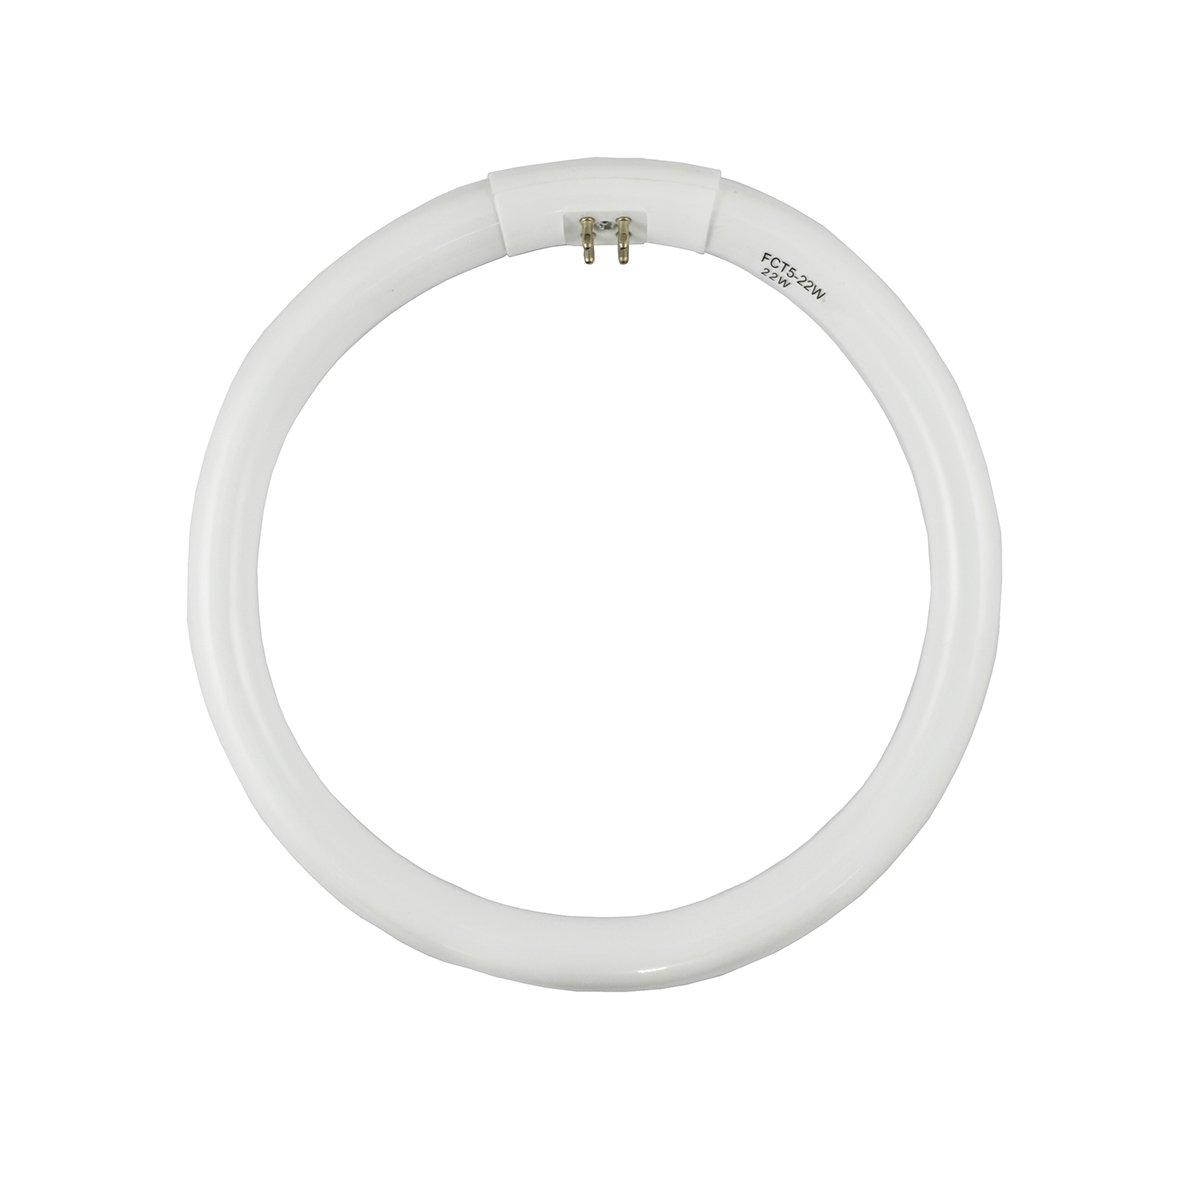 FCT5-22W-CW Cool-White 4100K Color Type: T5 Circular Fluorescent Watts: 22W